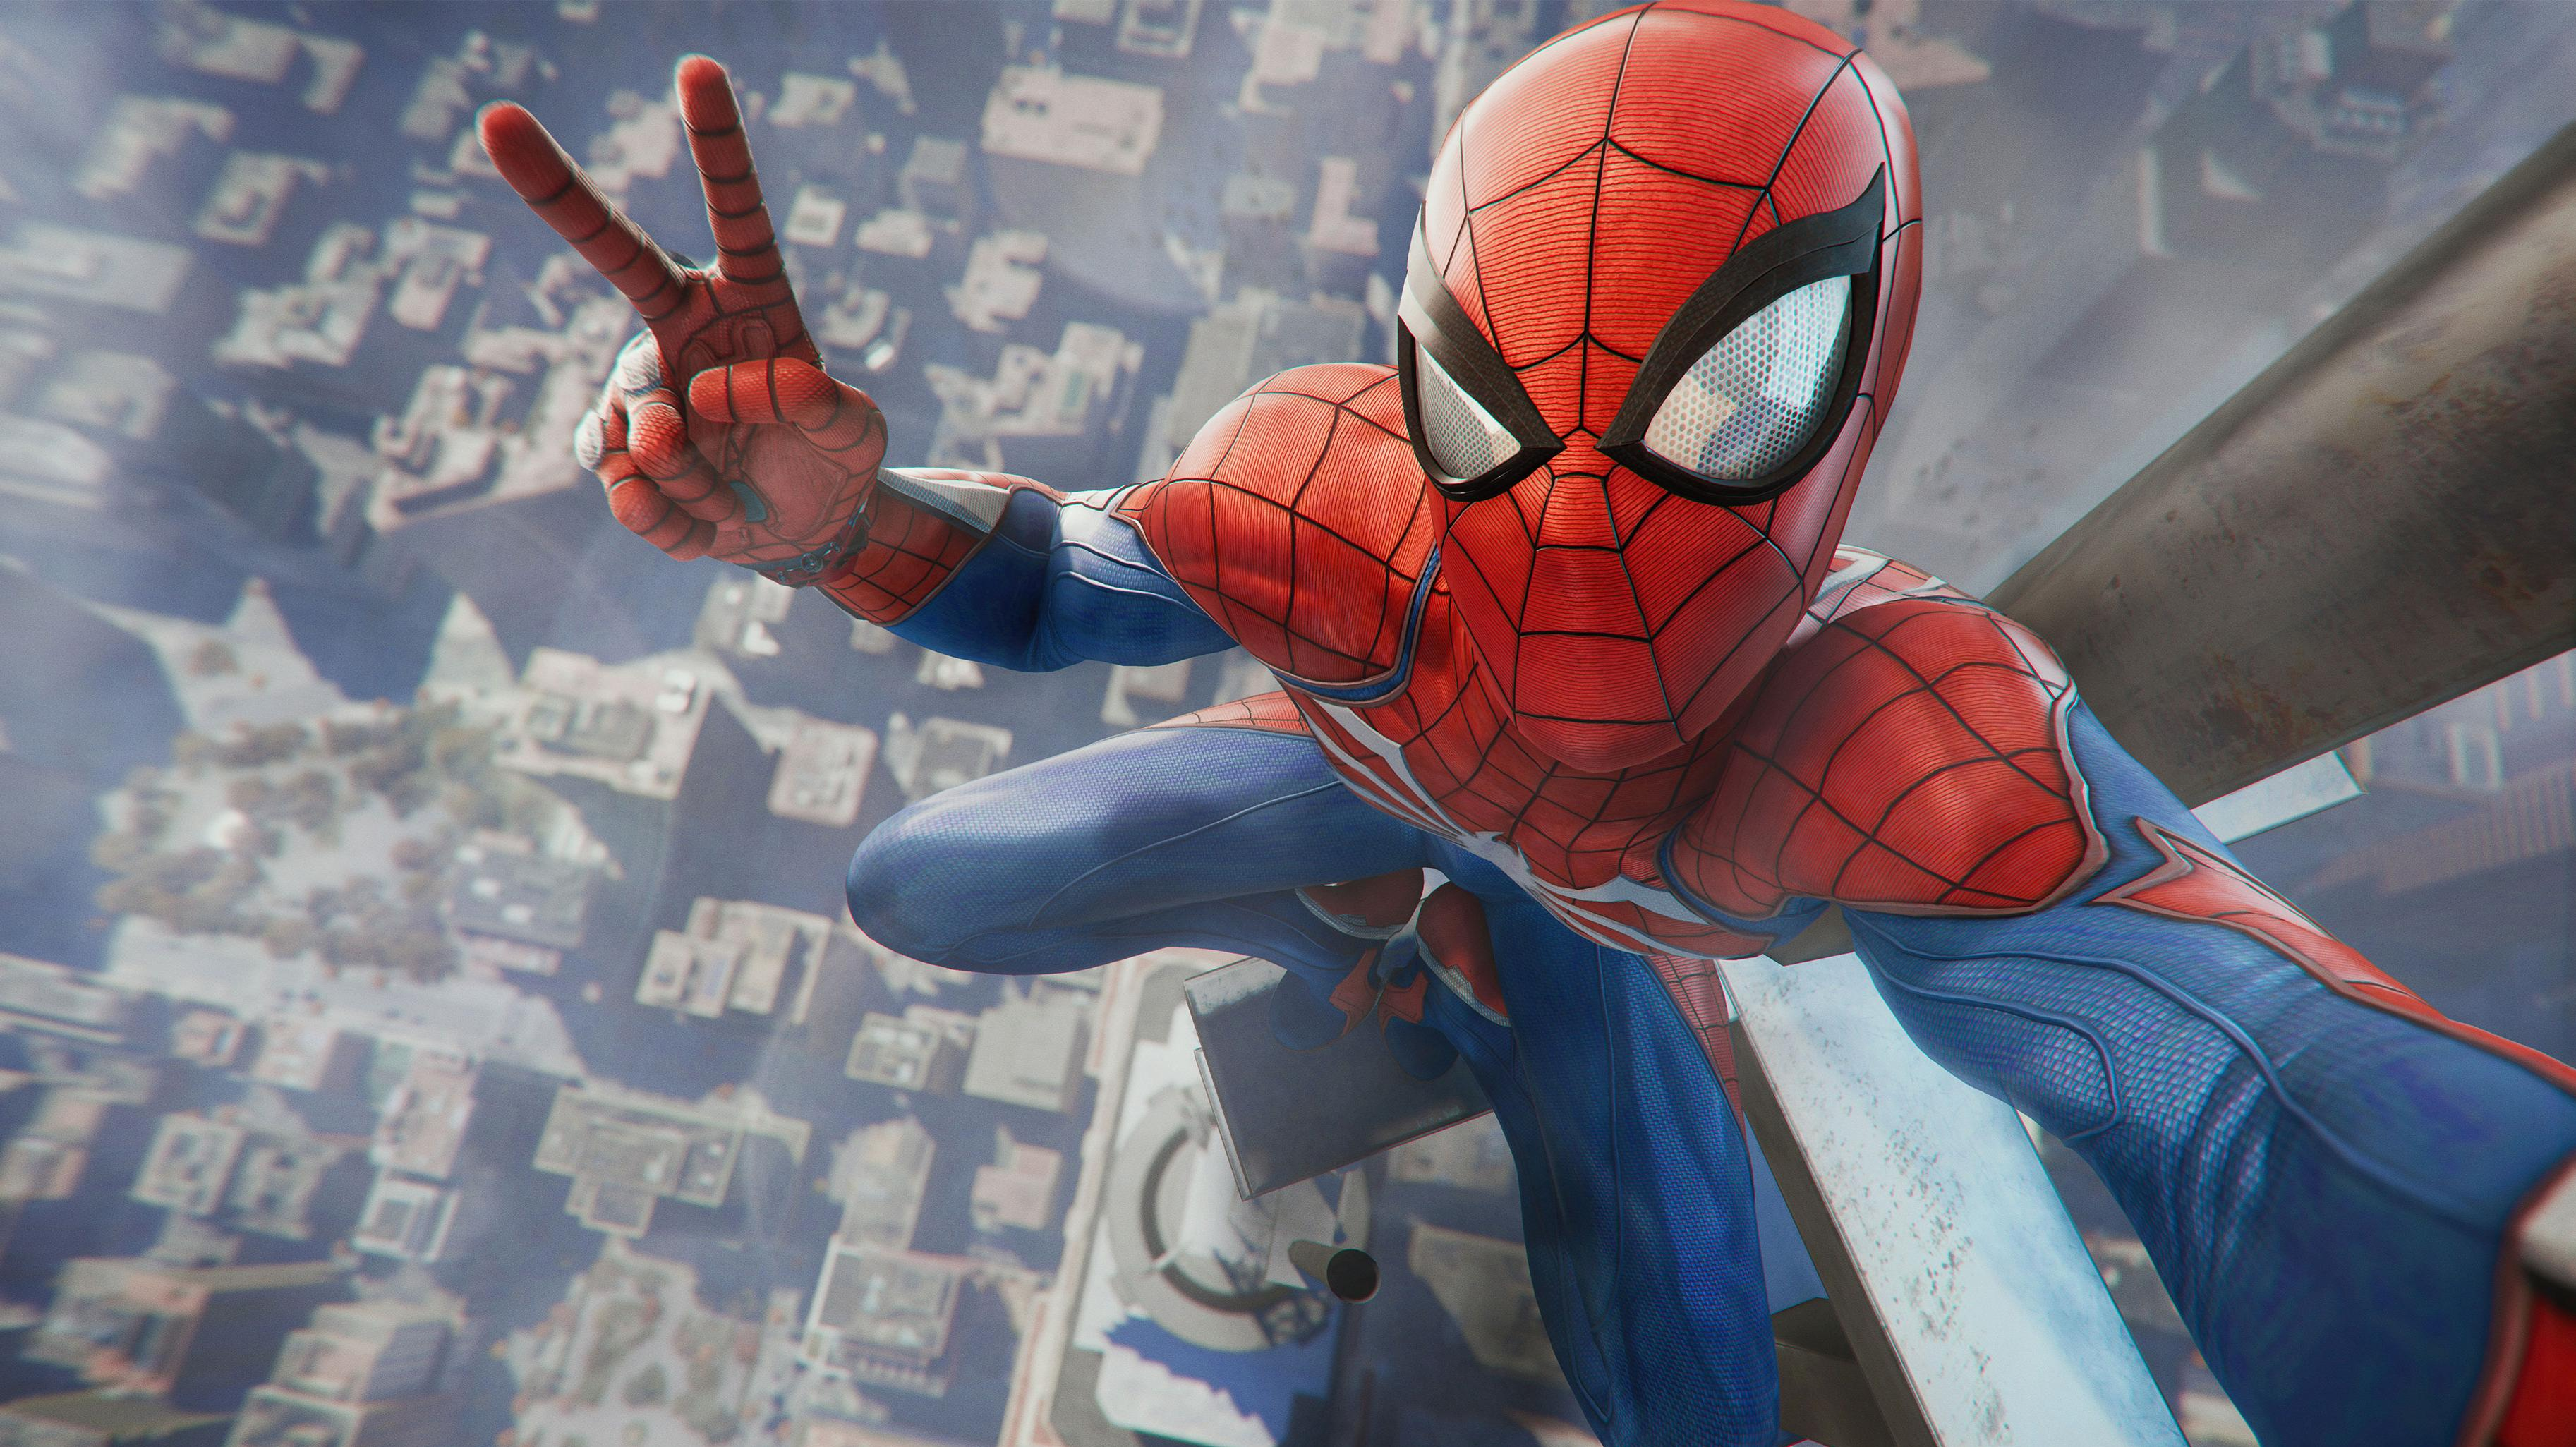 spider-man_ps4_selfie_photo_mode_legal.jpg